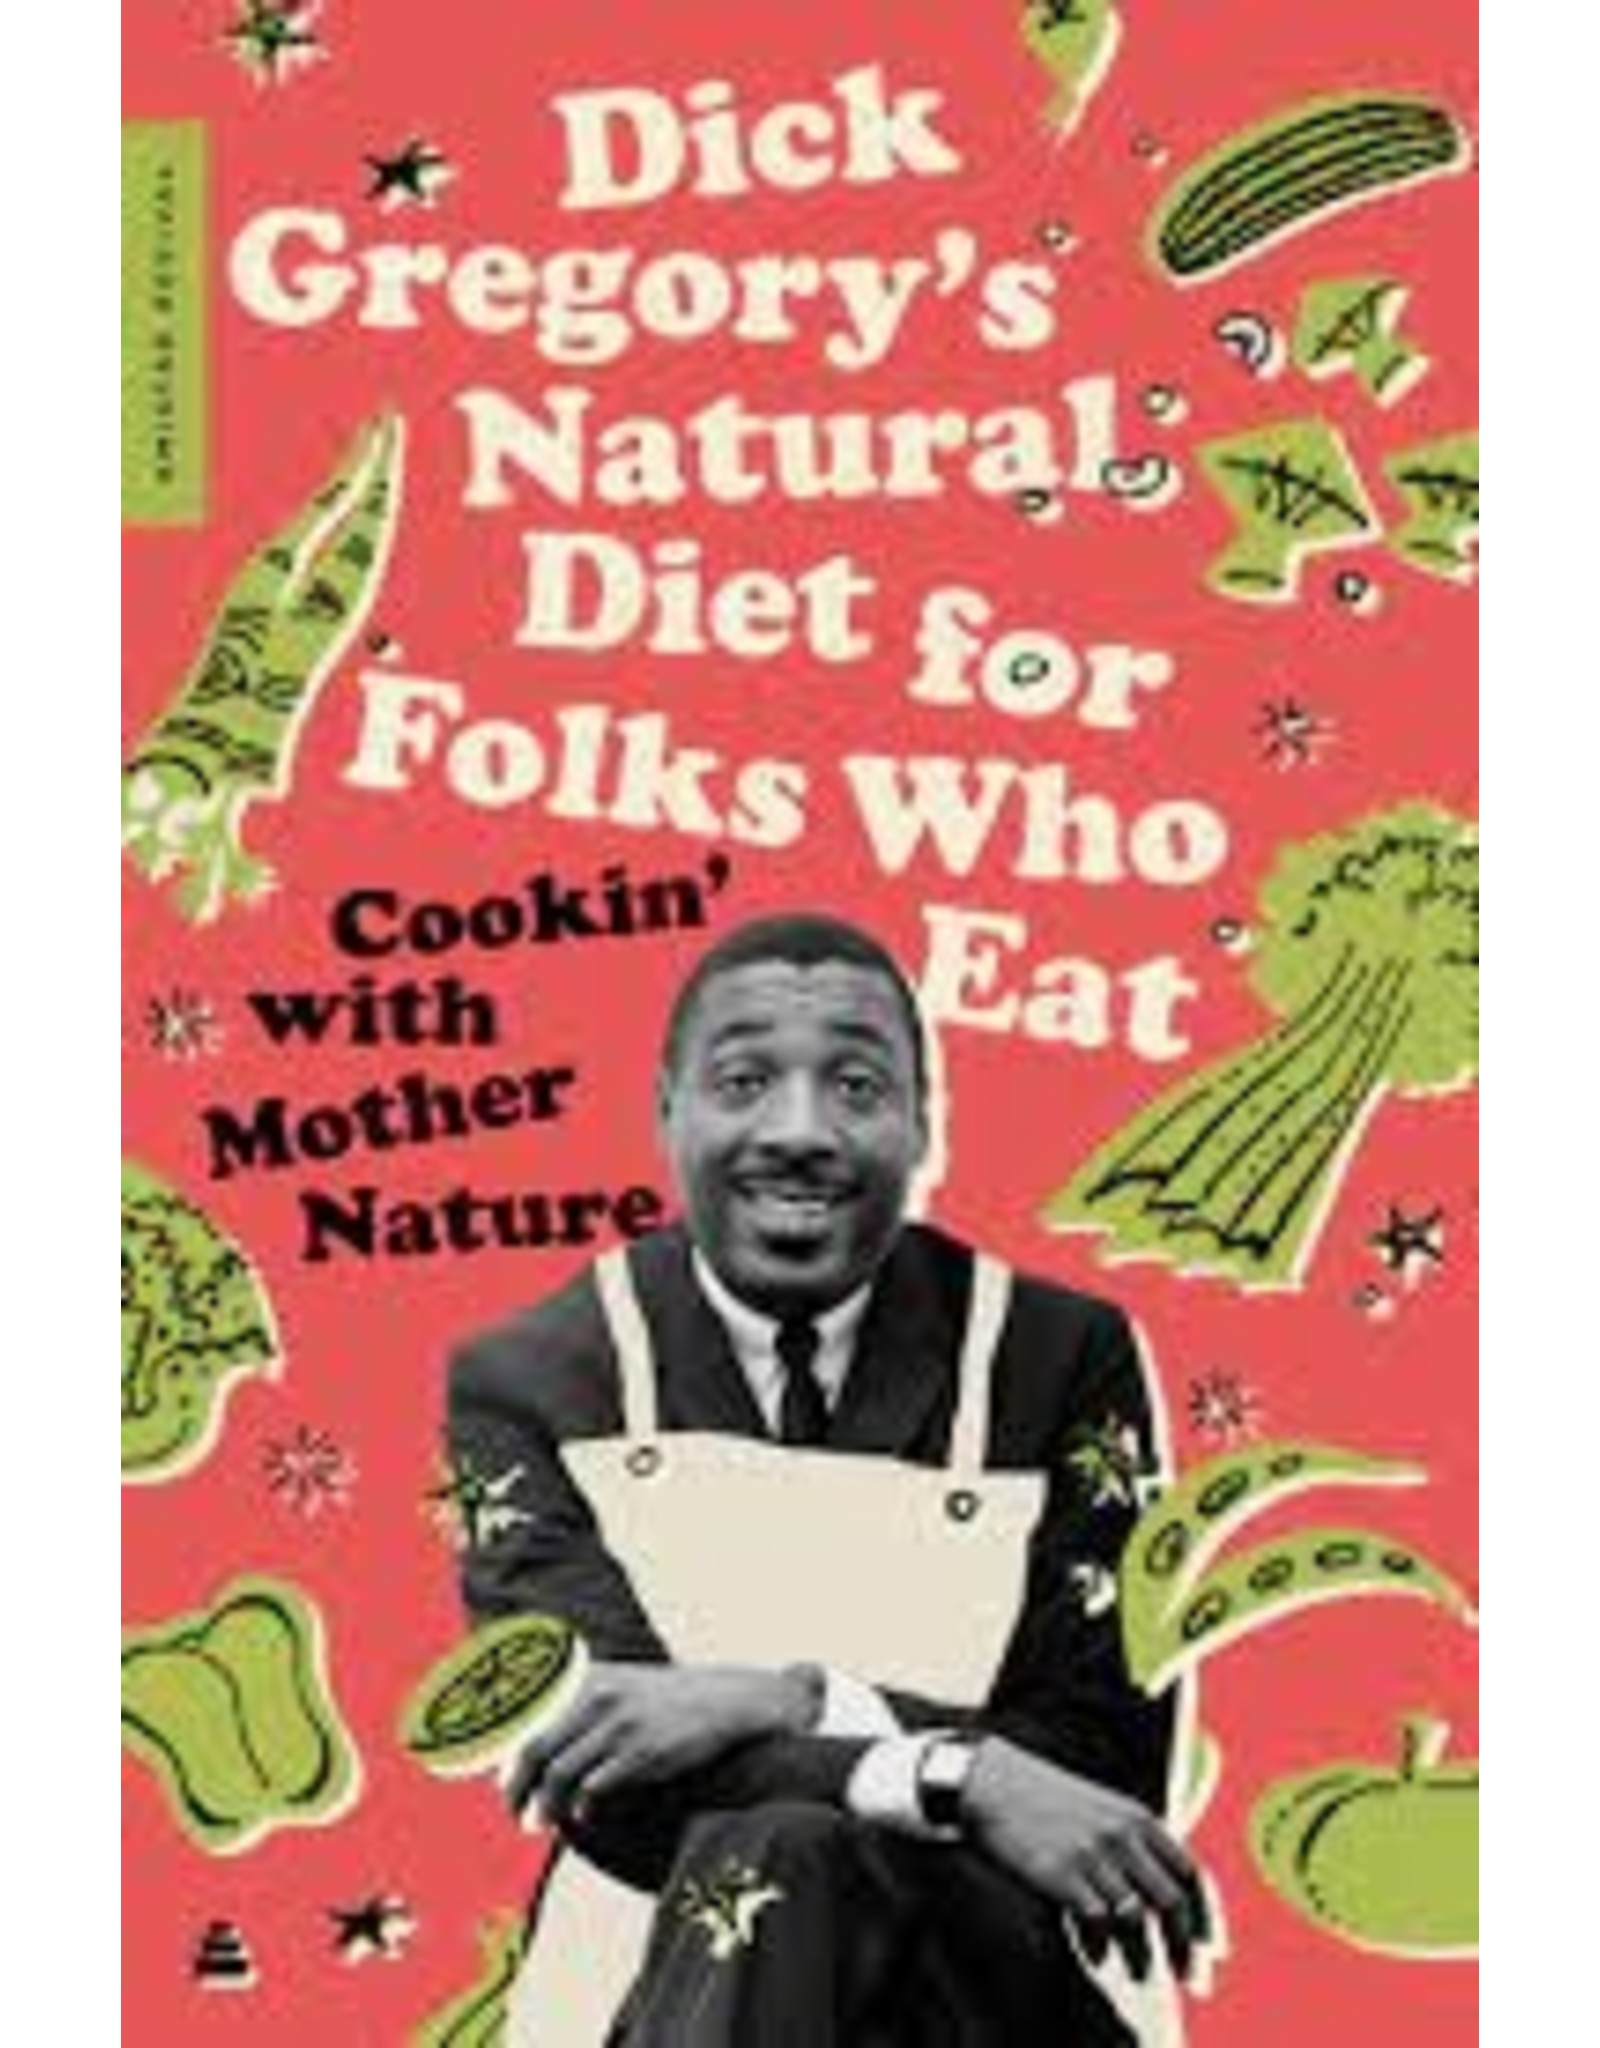 Books Dick Gregory's Natural Diet for Folks Who Eat: Cooking with Mother Nature